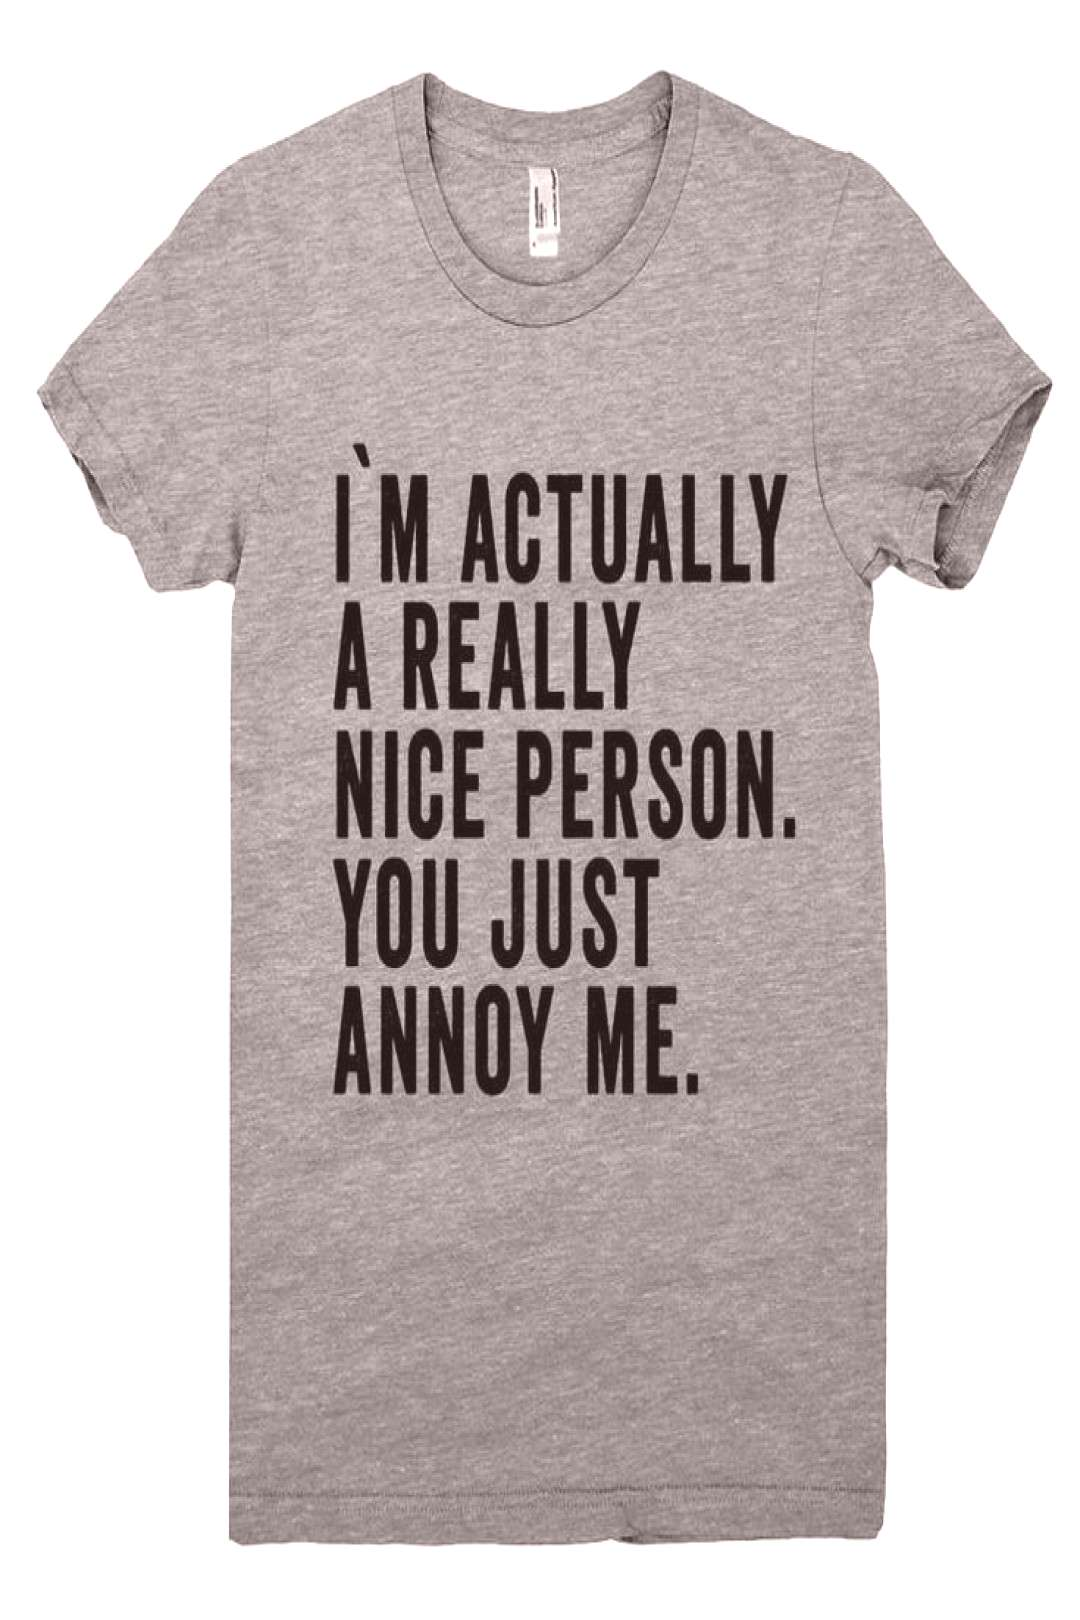 im actually a really nice person. you just annoy me t shirt - Funny Shirts - Ideas of Funny Shirts